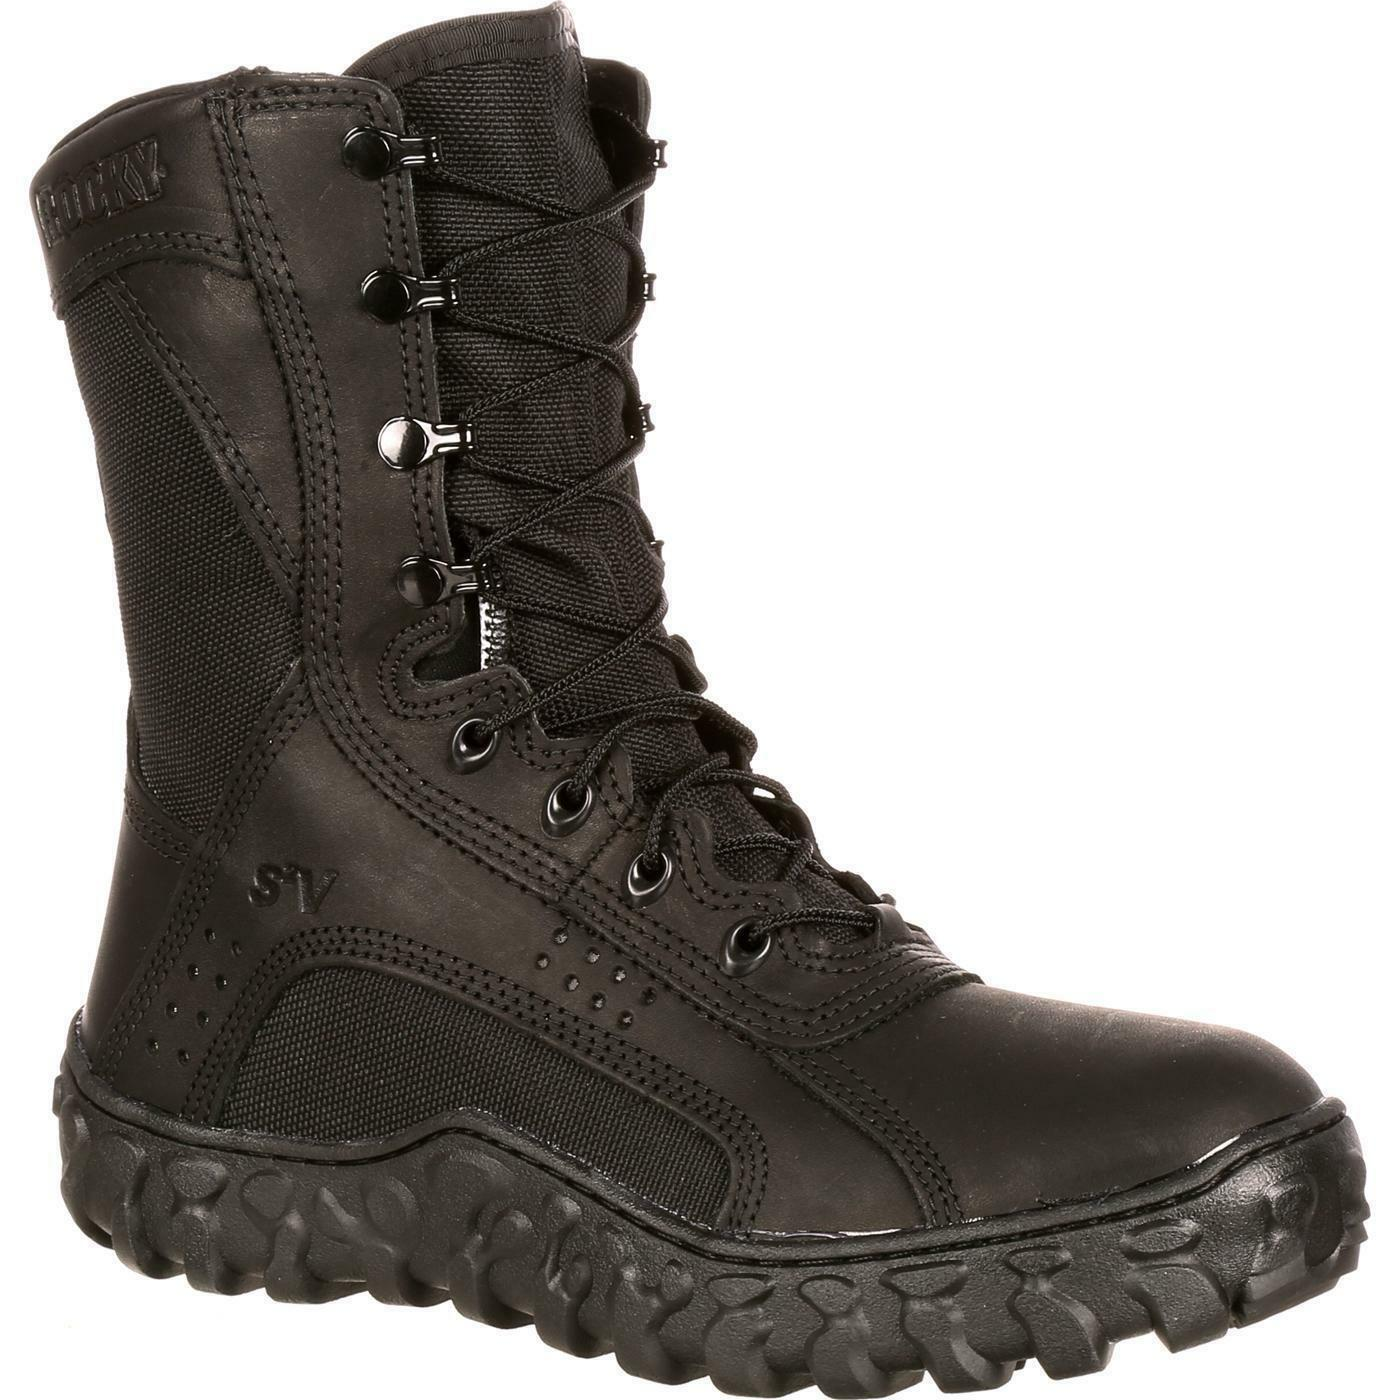 Rocky 102 S2V 8  US Made Berry Duty Compliant Tactical Military Duty Berry Combat Stiefel b2e326